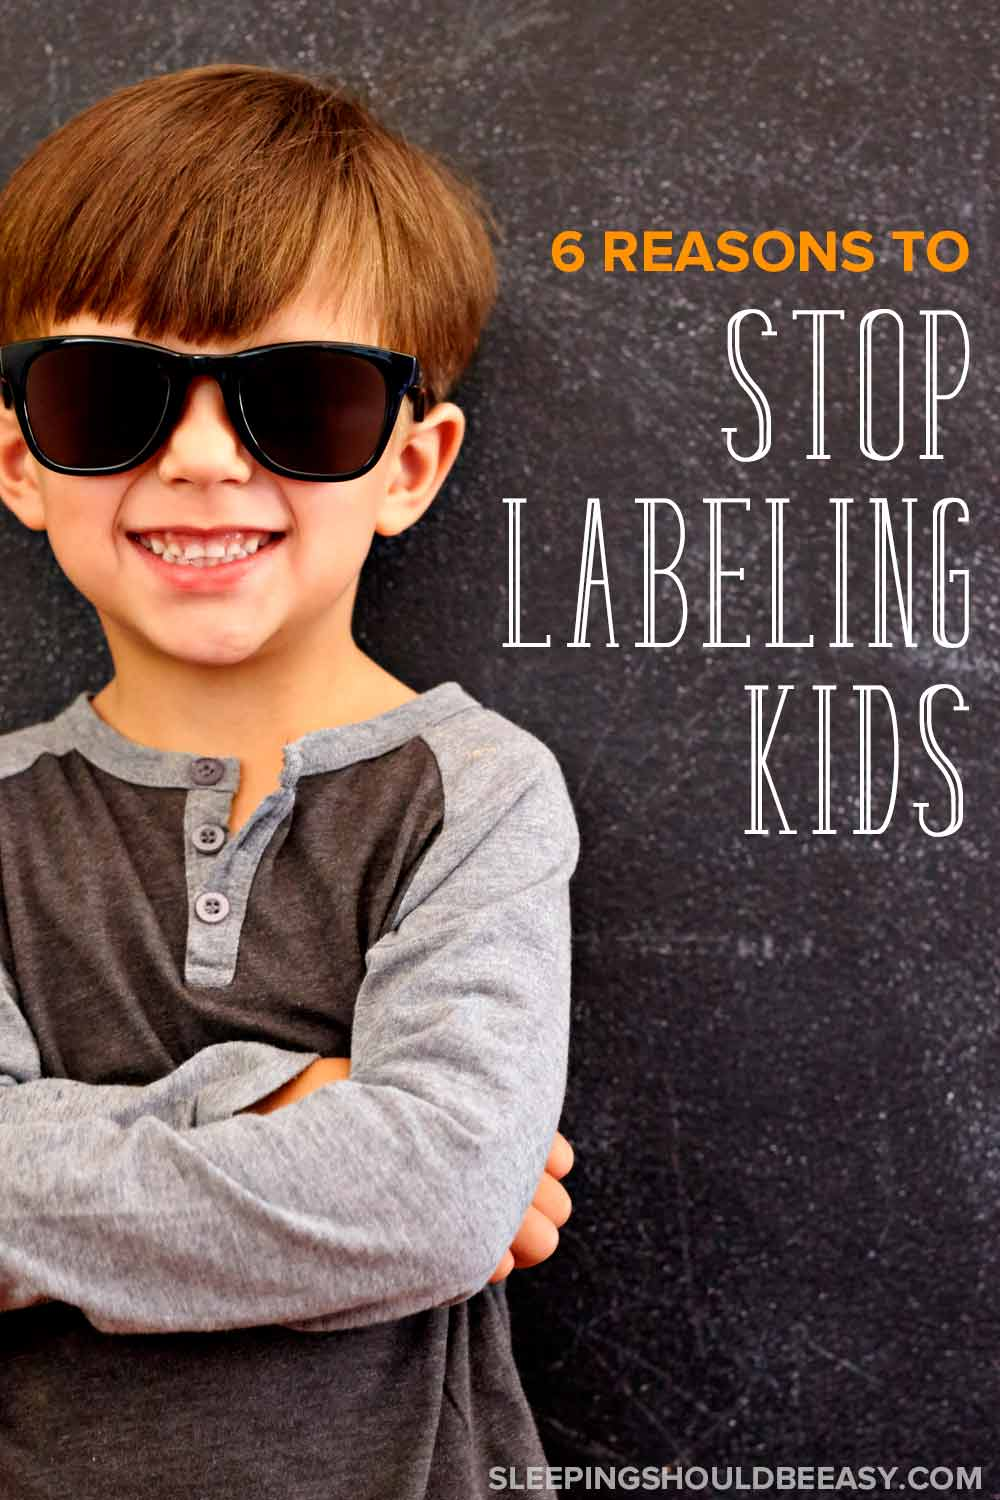 From shy to outgoing, difficult to easygoing, learn the negative effects of labeling kids and why you should not label children (plus what to do instead). #parenting